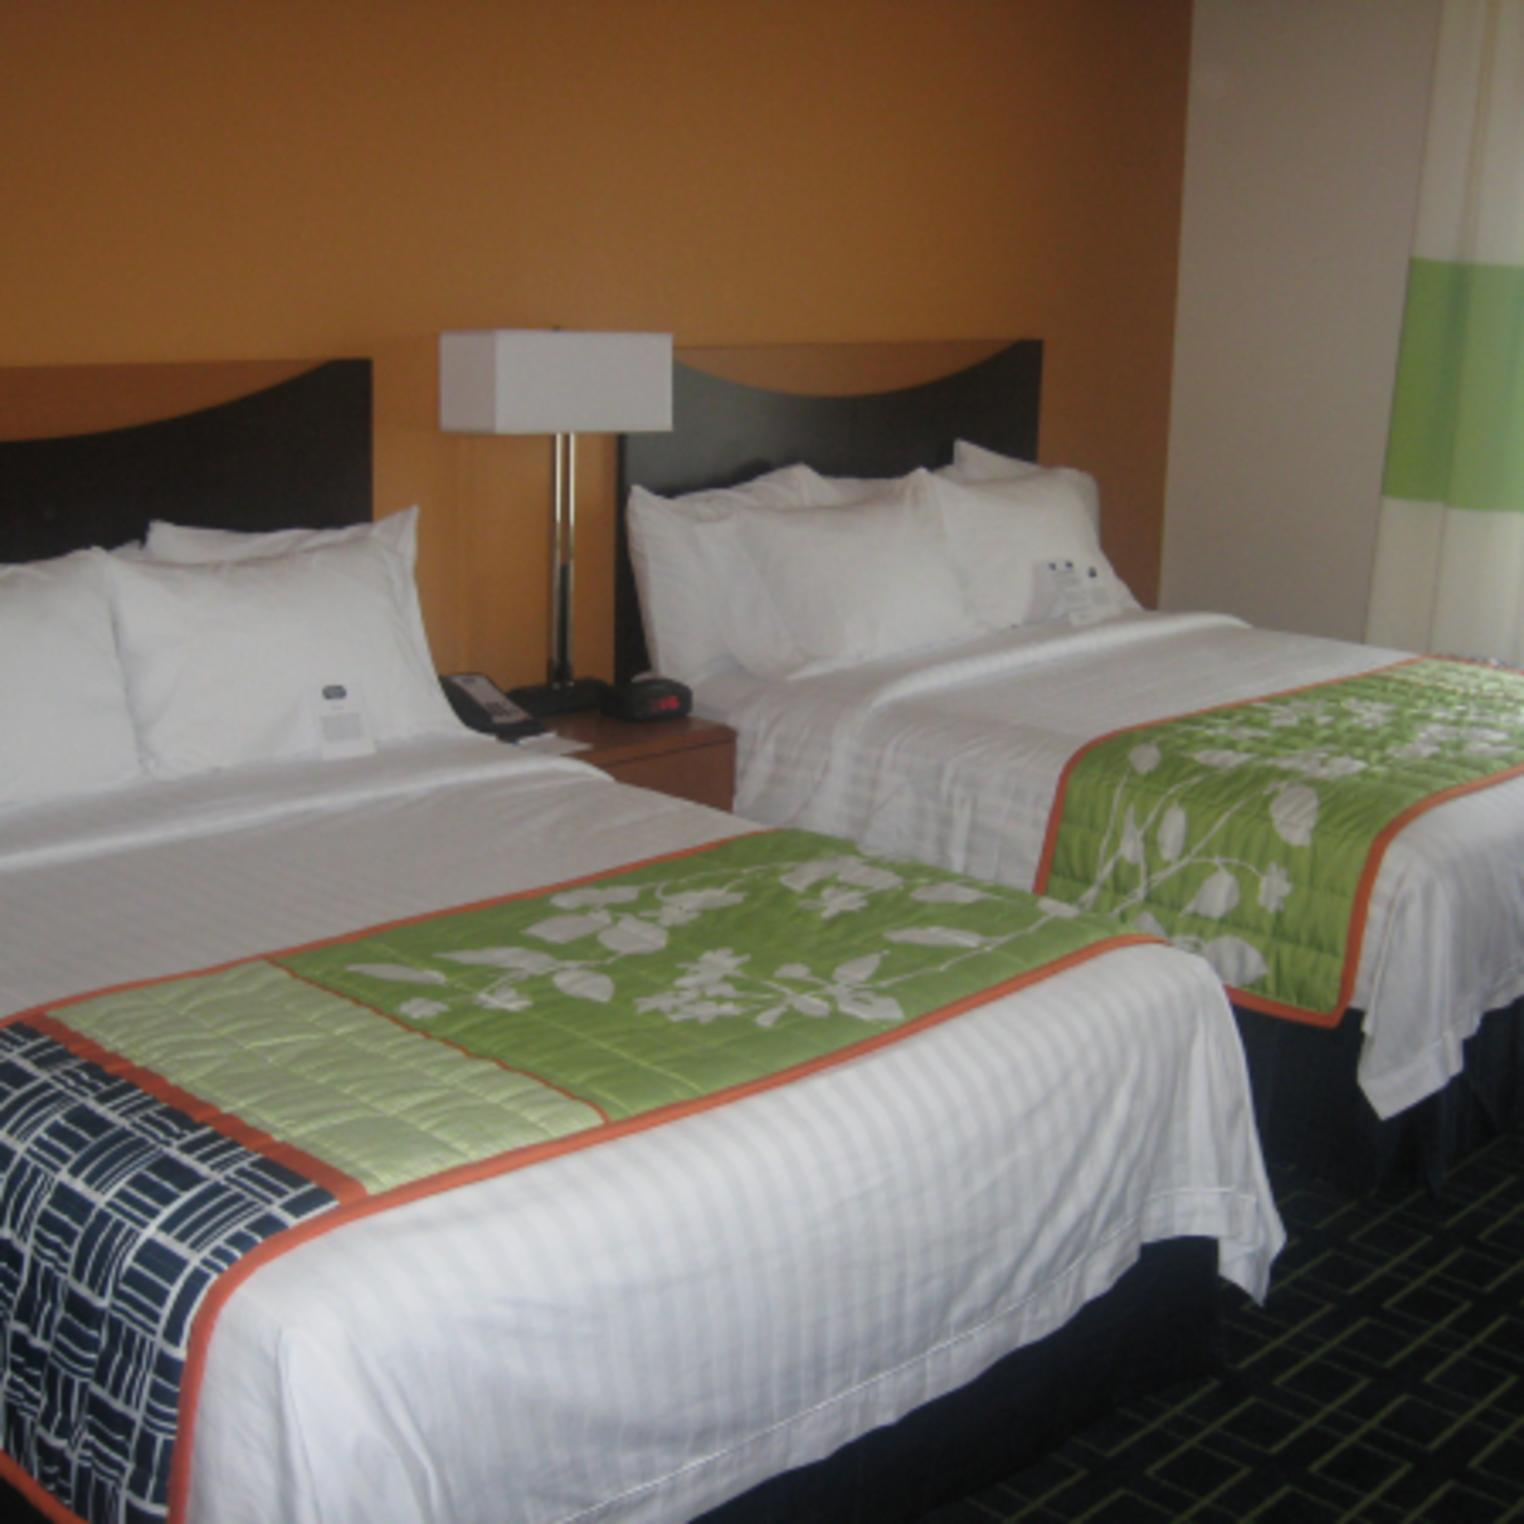 Fairfield Inn & Suites Carlisle double bed accommodations